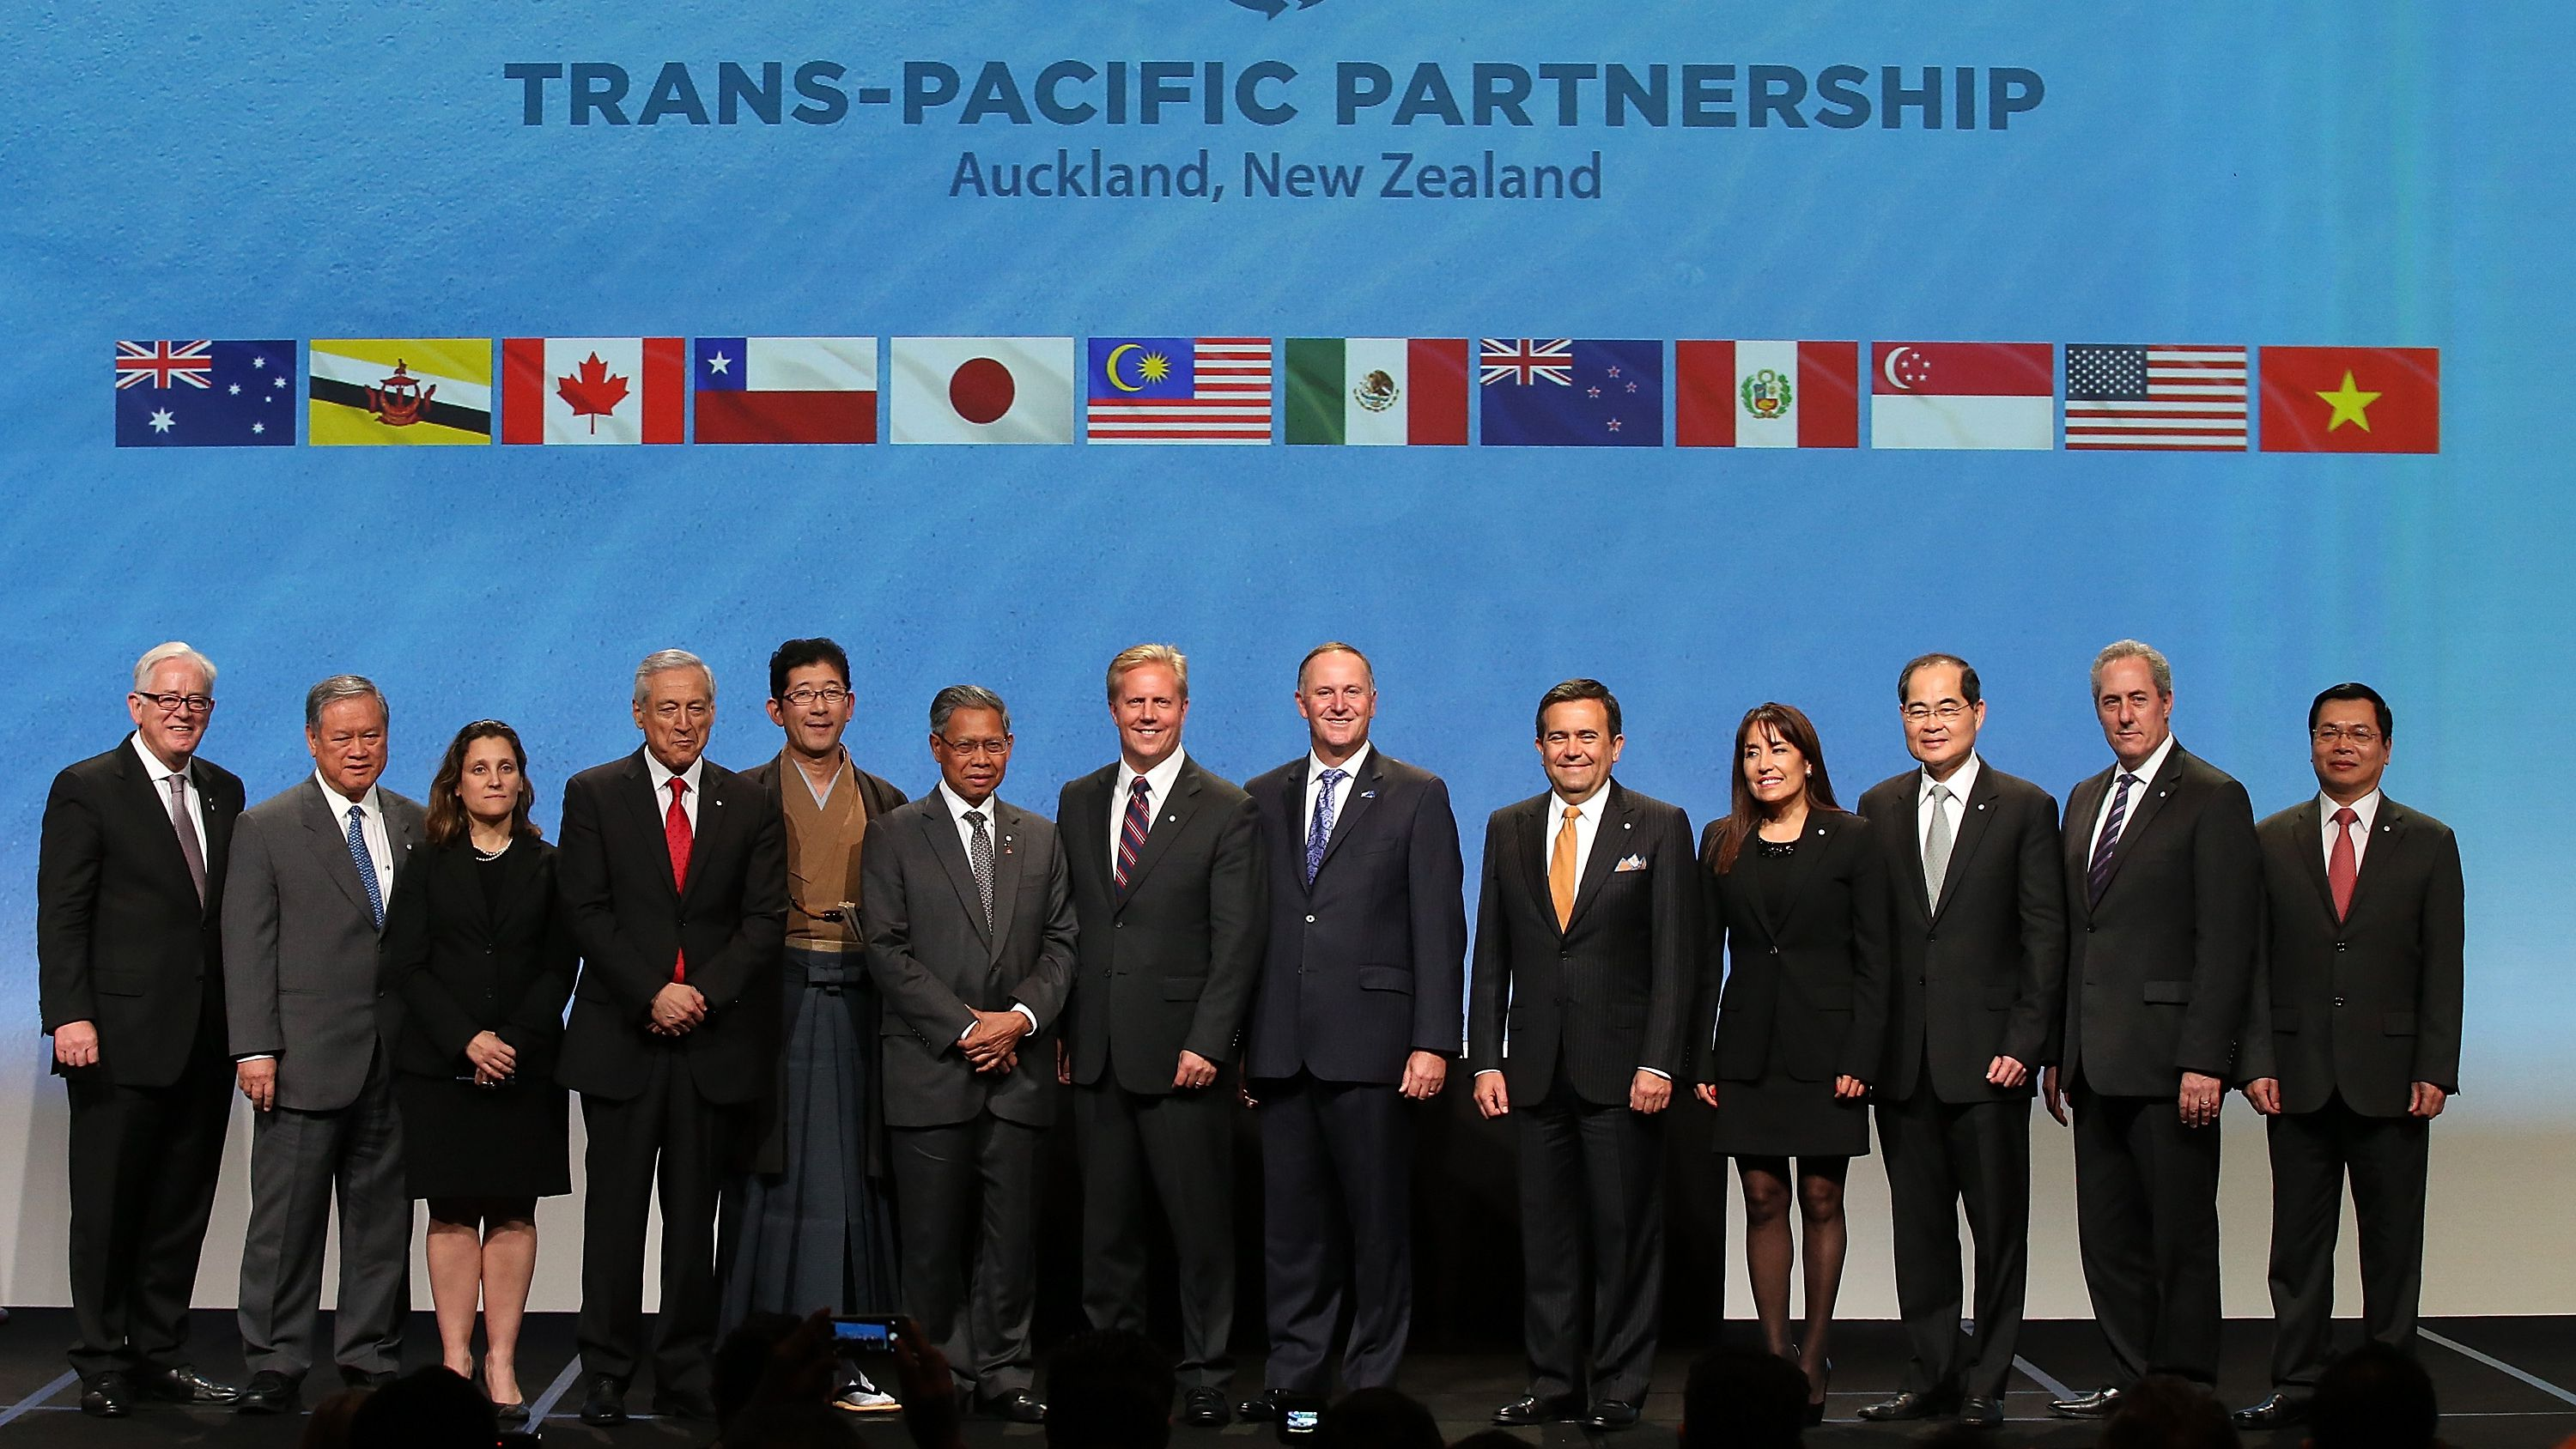 3D Scale Monteforte signed and sealed, the trans-pacific partnership faces two